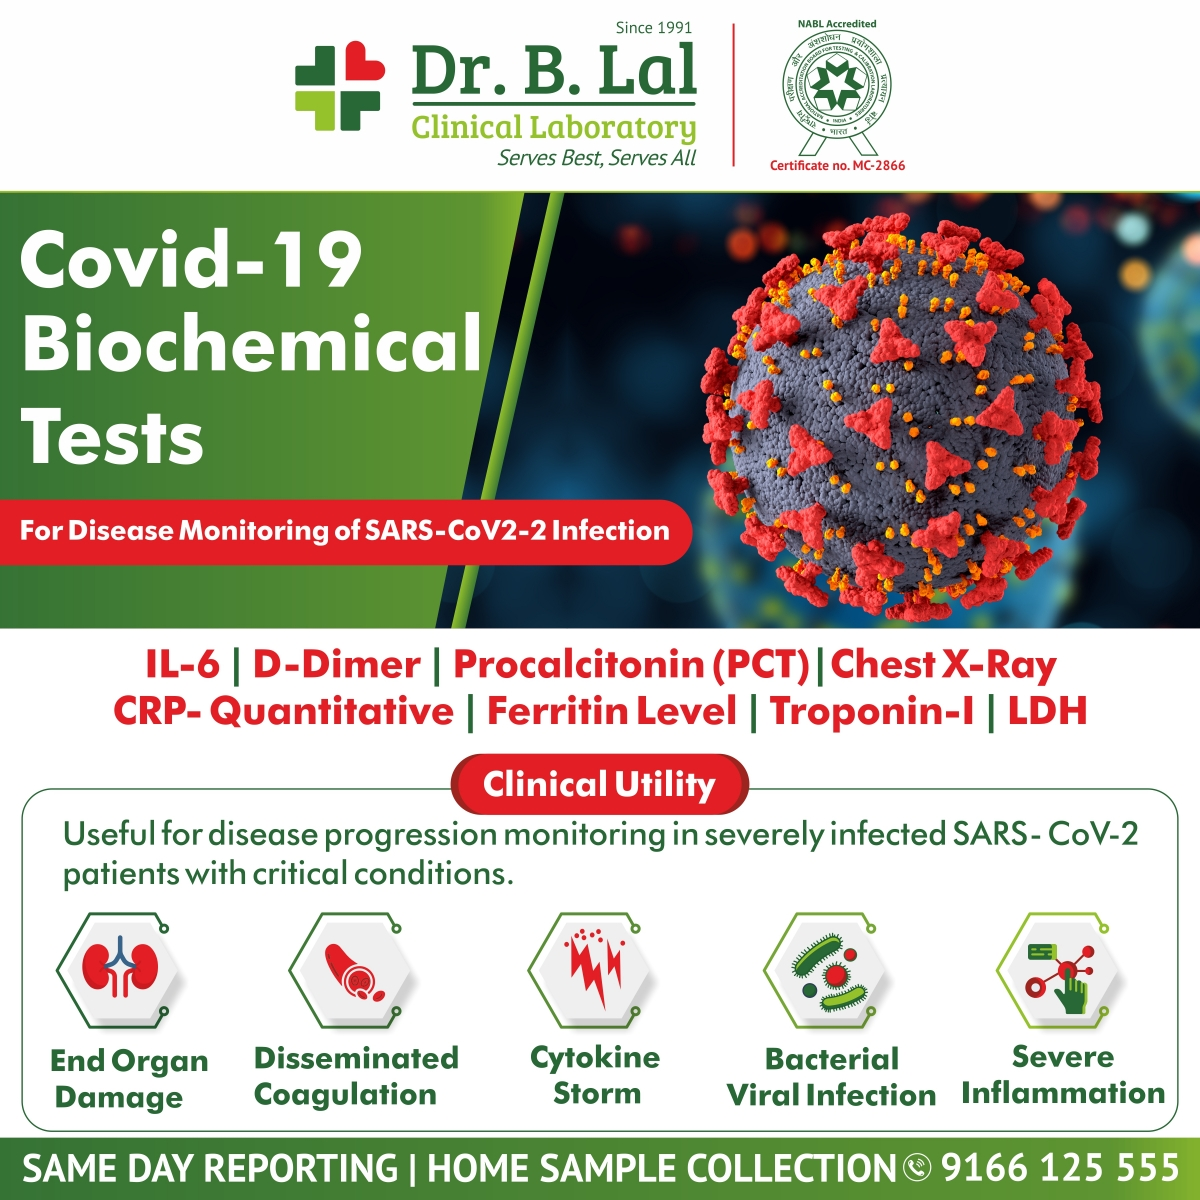 COVID-19 Biochemical Tests in Rajasthan | www.blallab.com